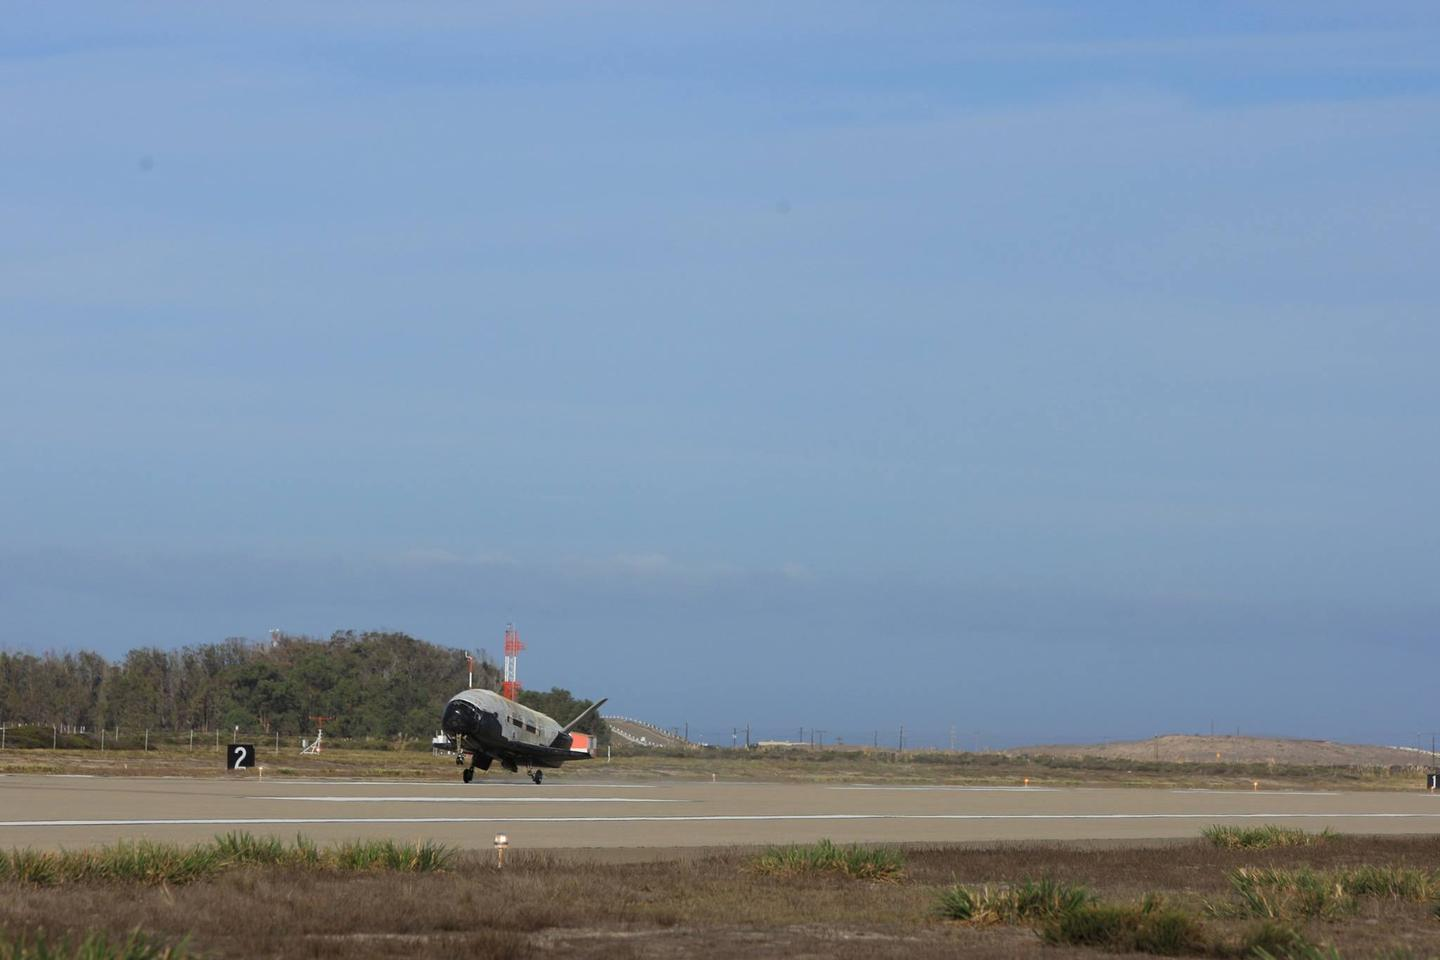 The X-37B landing at Vandenberg AFB (Image: Boeing)